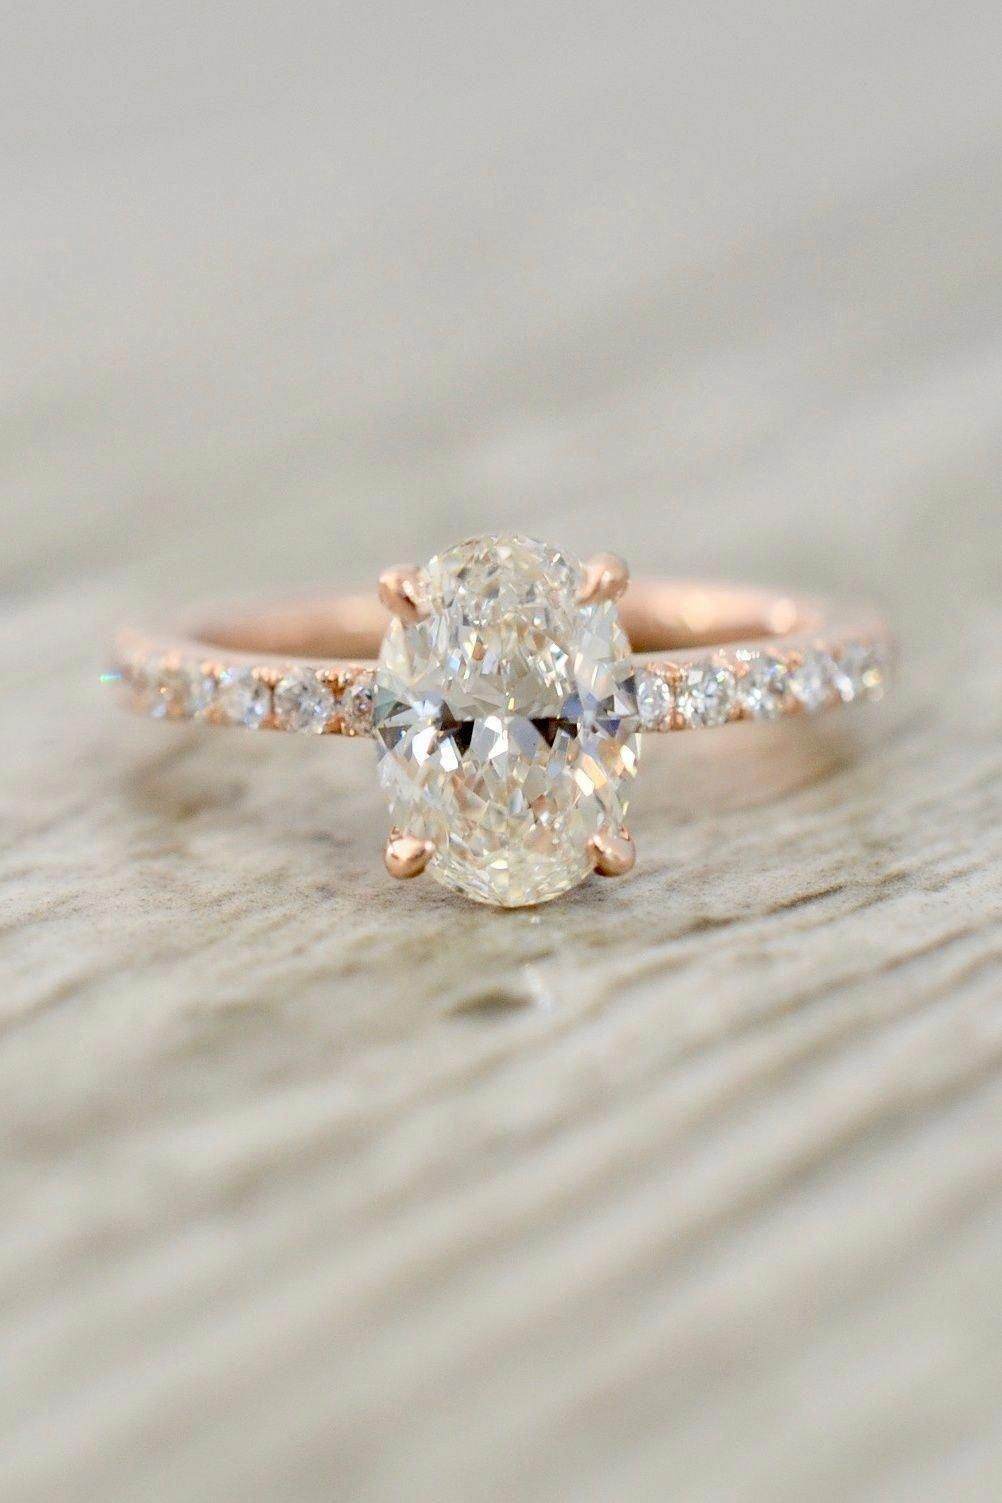 Gorgeous Simple Engagement Rings Simpleengagementrings: Gorgeous Simple Wedding Rings At Reisefeber.org